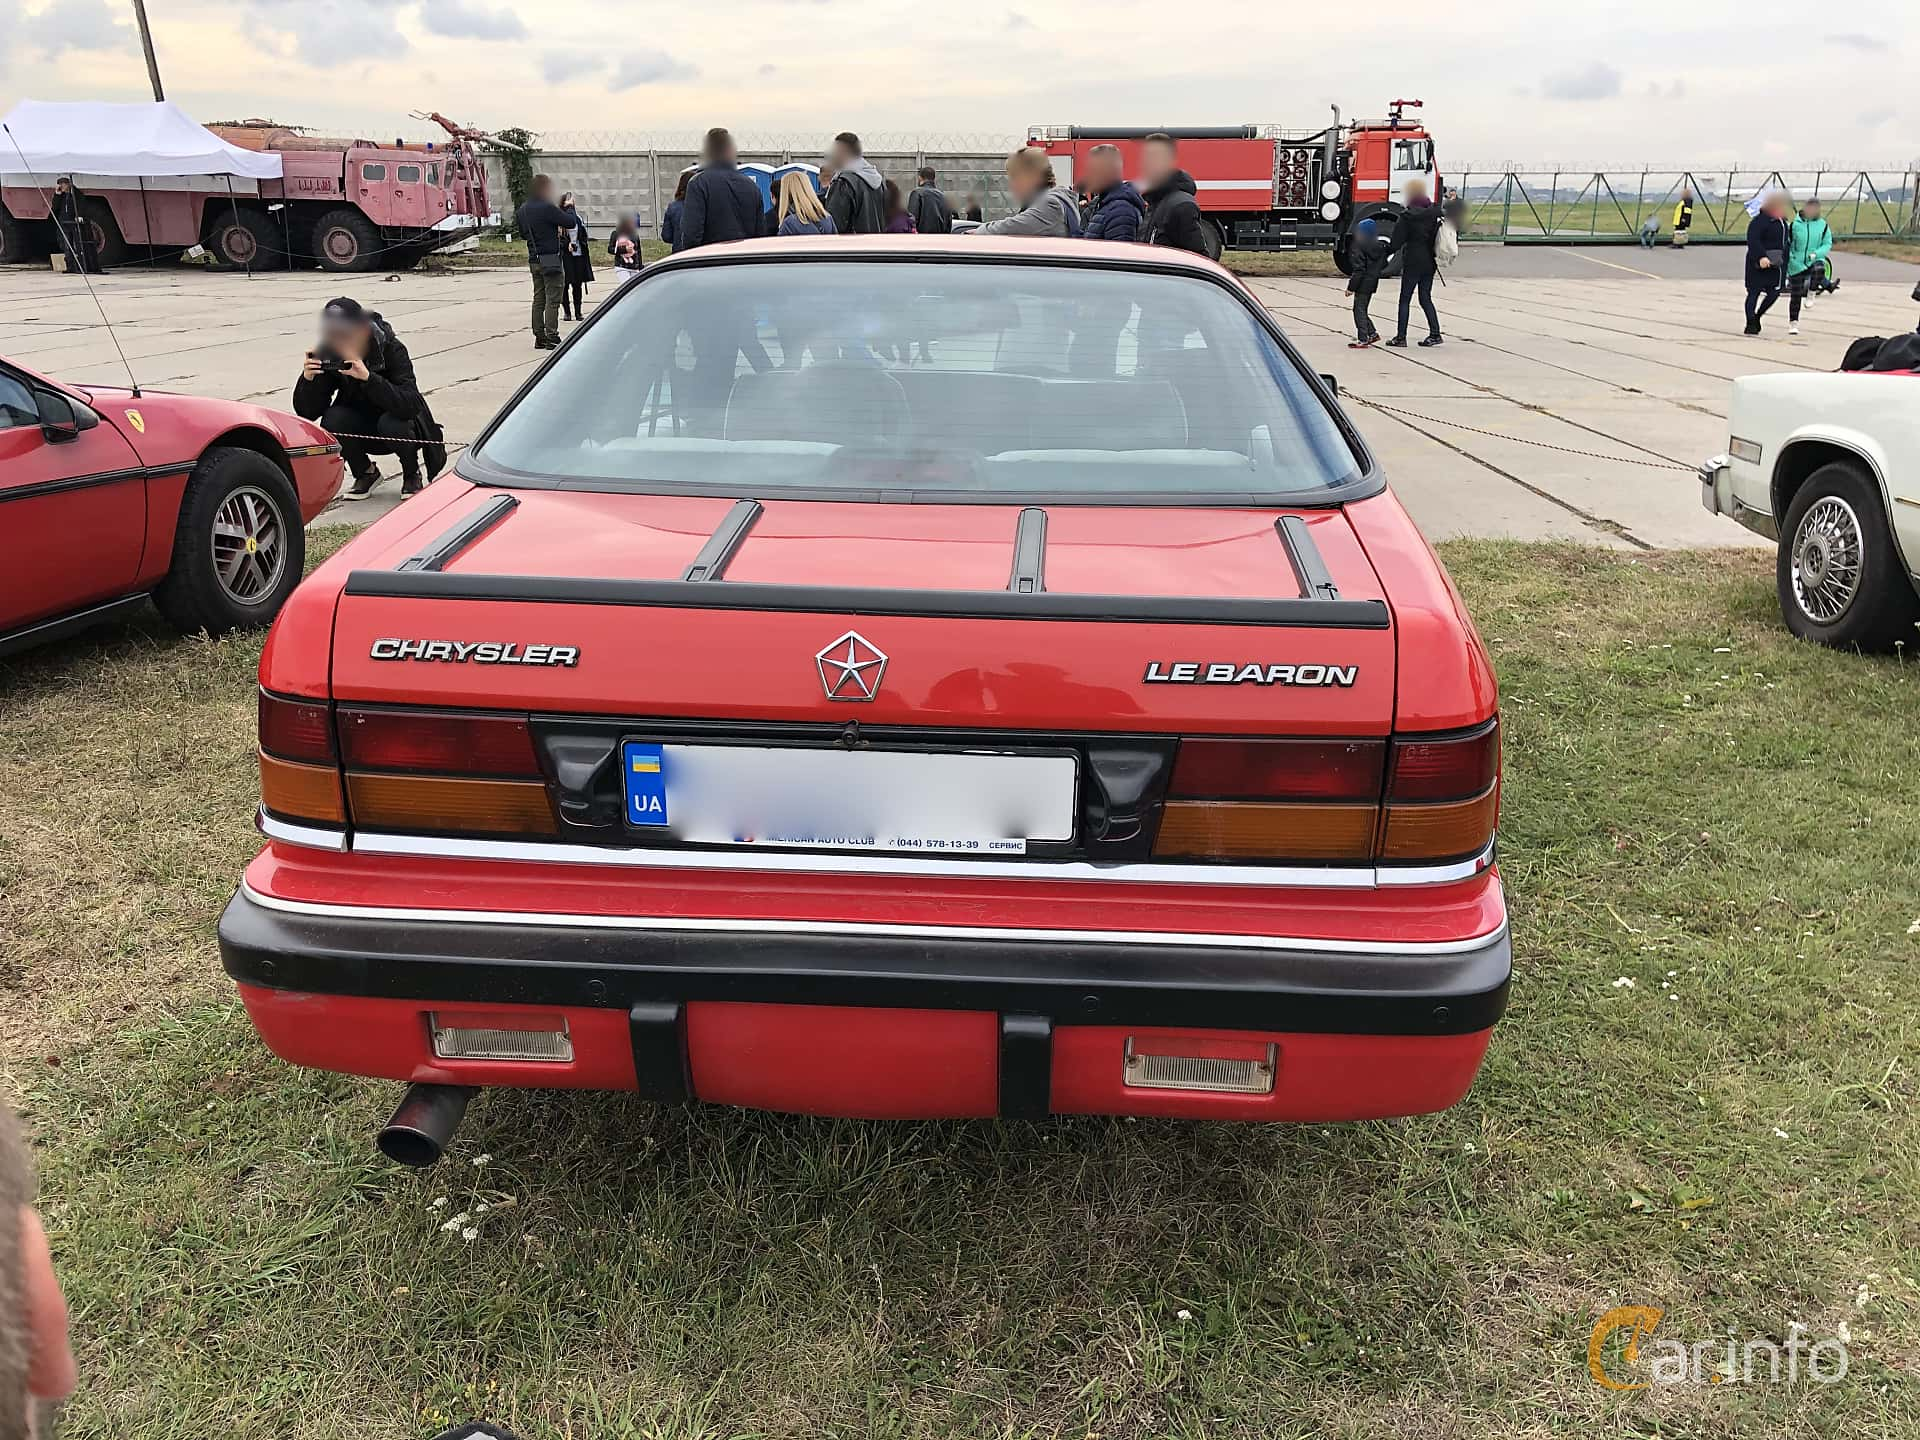 Chrysler LeBaron GTC Coupé 2.2 Manual, 177hp, 1989 at Old Car Land no.2 2019